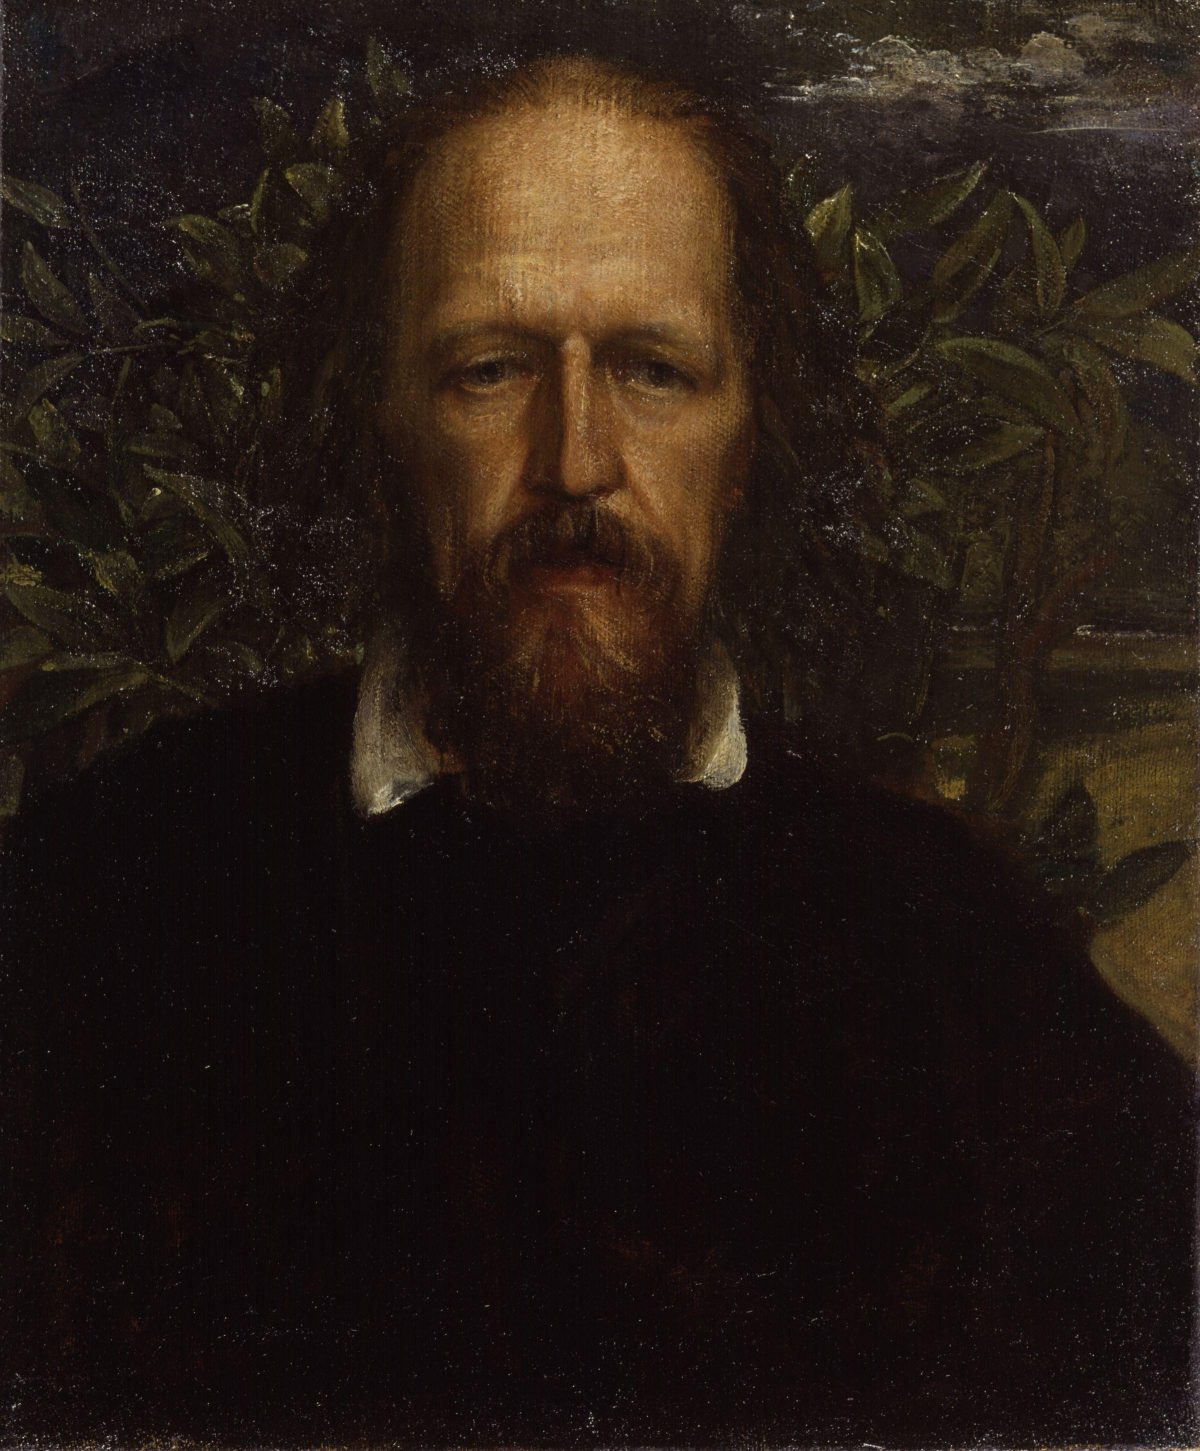 Alfred_Tennyson__by_George_Frederic_Watts